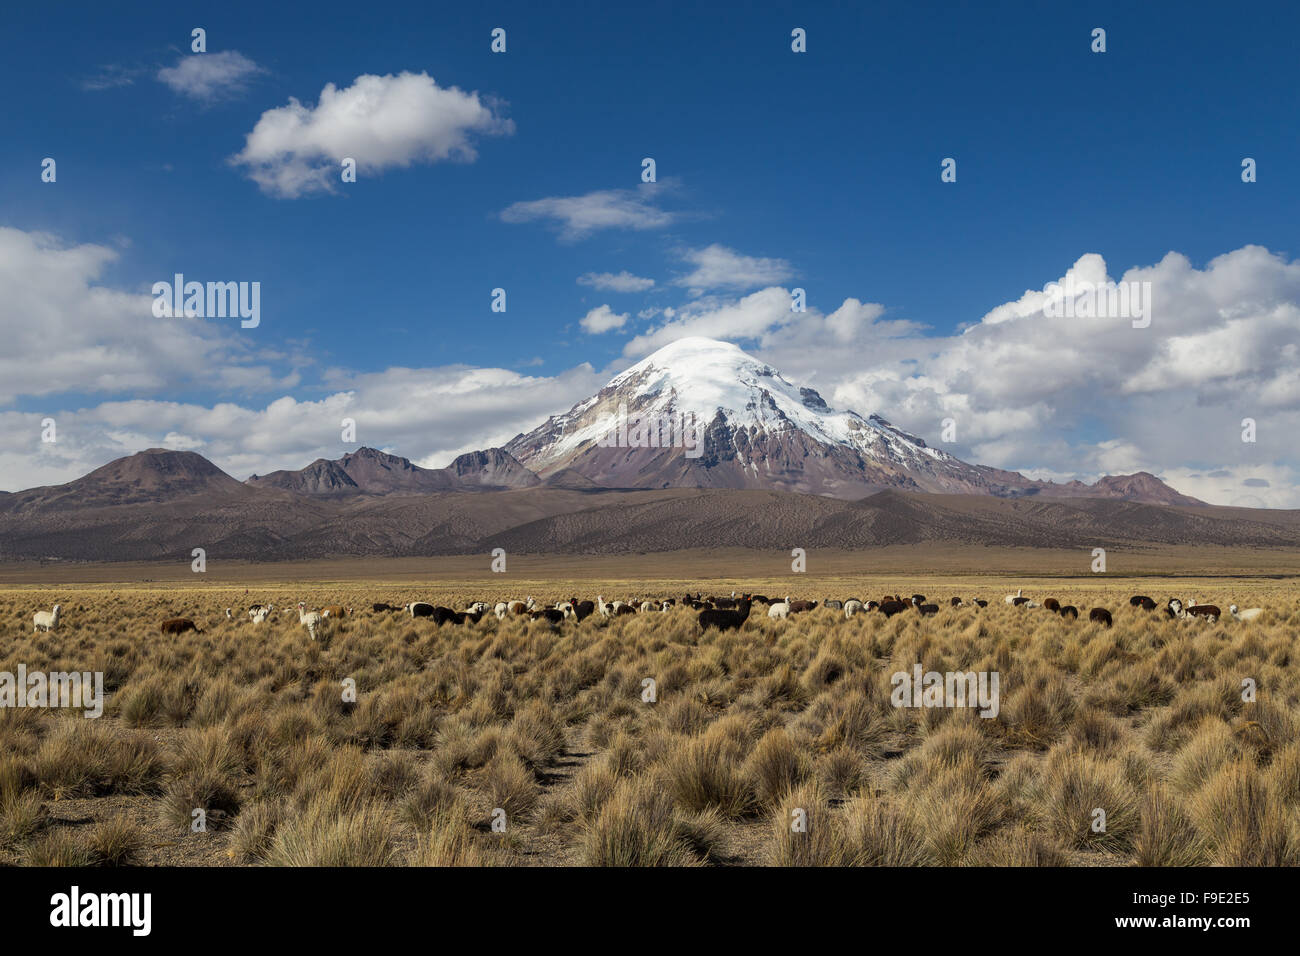 Photograph of the highest mountain in Bolivia Mount Sajama with a group of lamas and alpacas in front. - Stock Image